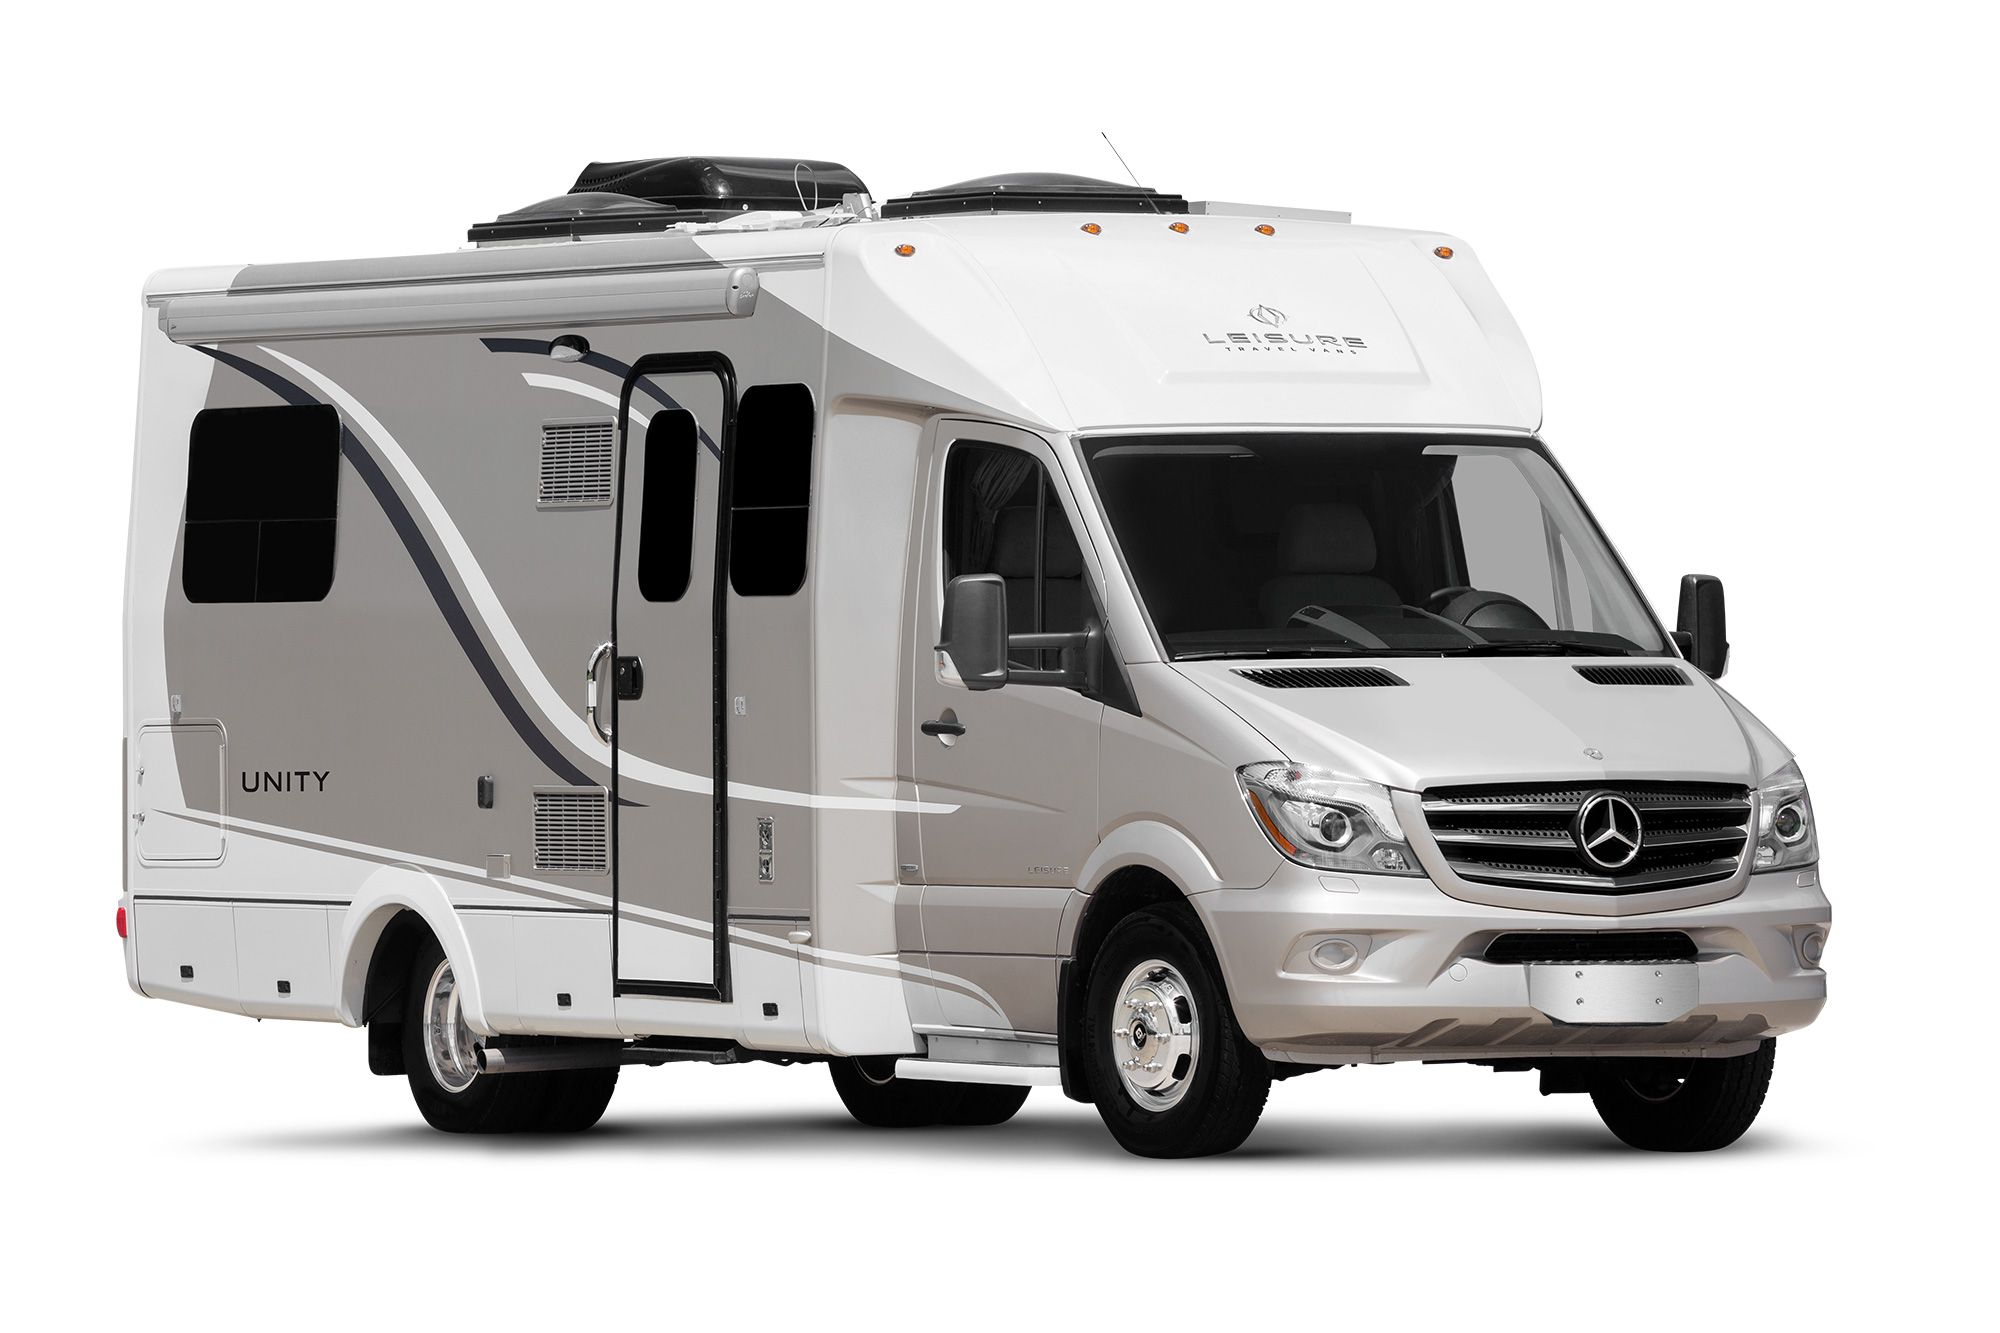 2016 Sprinter Rv Buyer S Guide Is Out Leisure Travel Vans